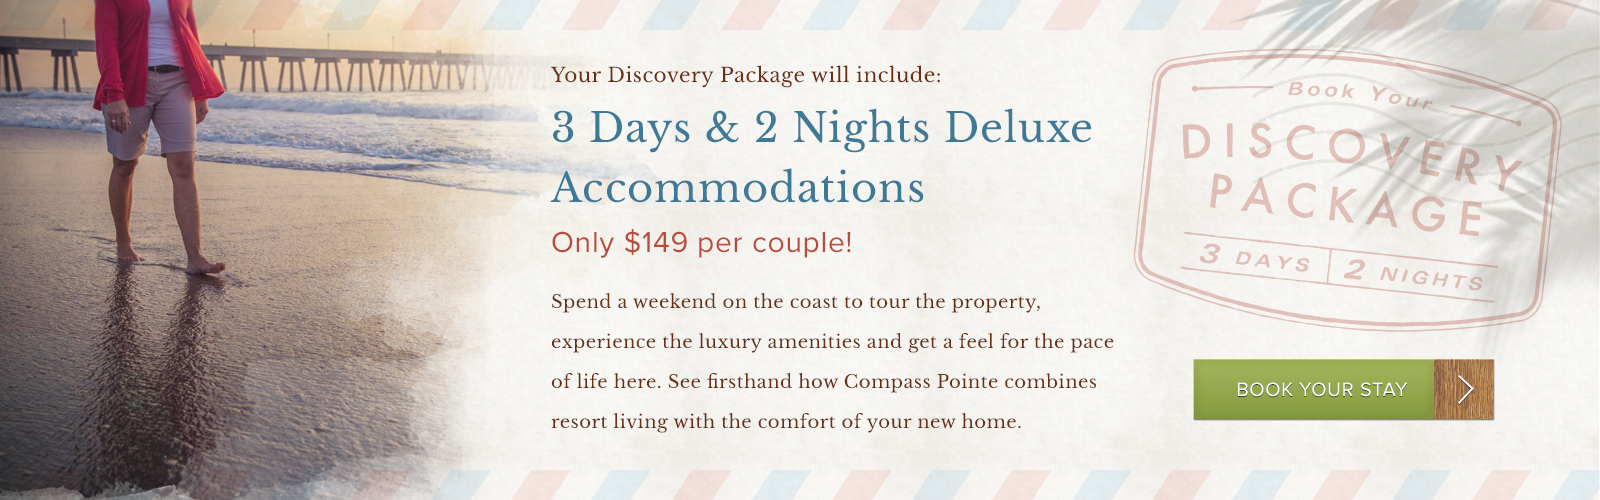 Book Your Discovery Package